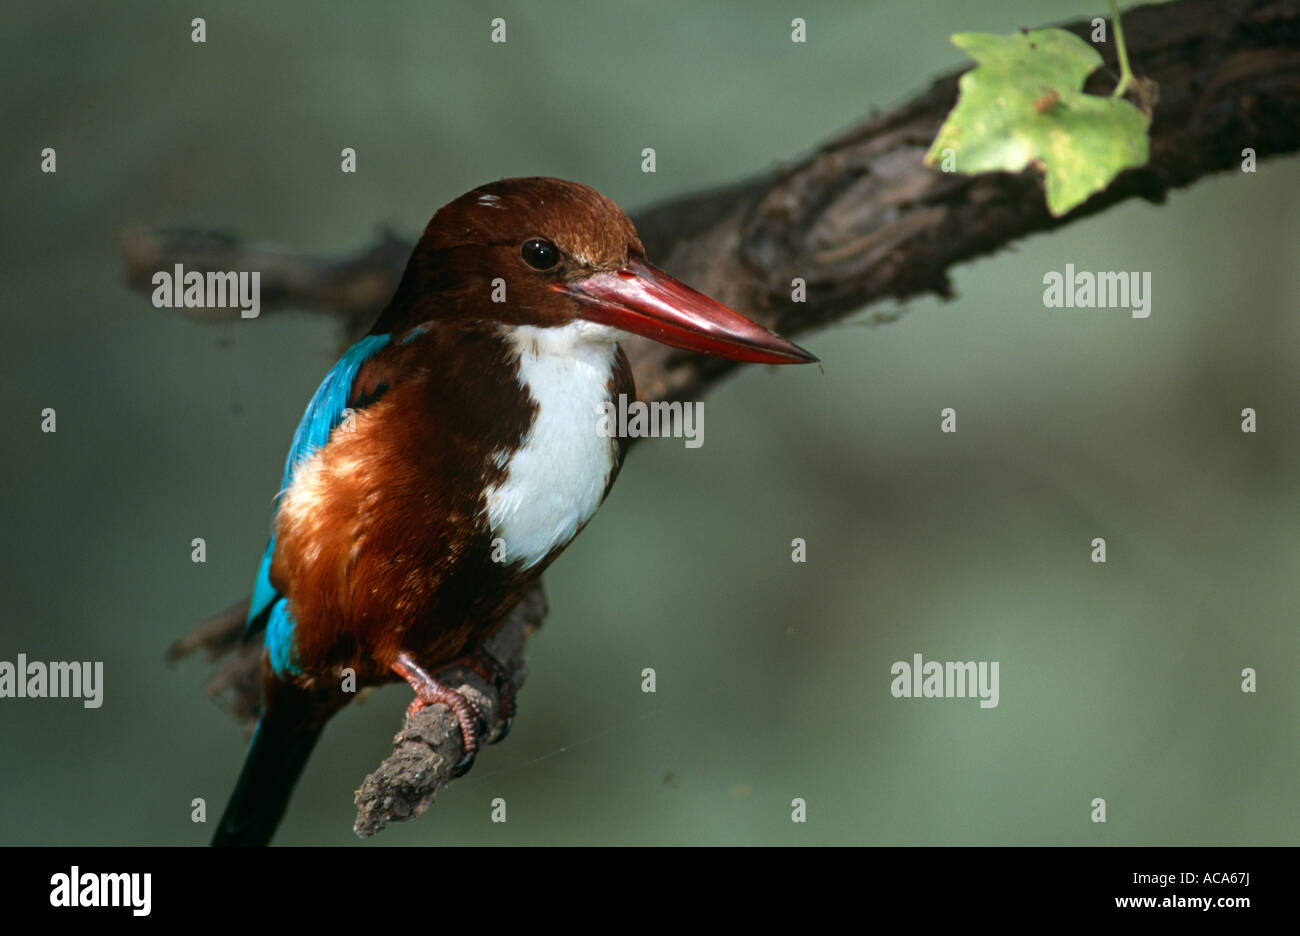 White breasted kingfisher Halycon smyrnensis perched on branch Keoladeo Ghana NP Bharatpur Rajasthan India - Stock Image